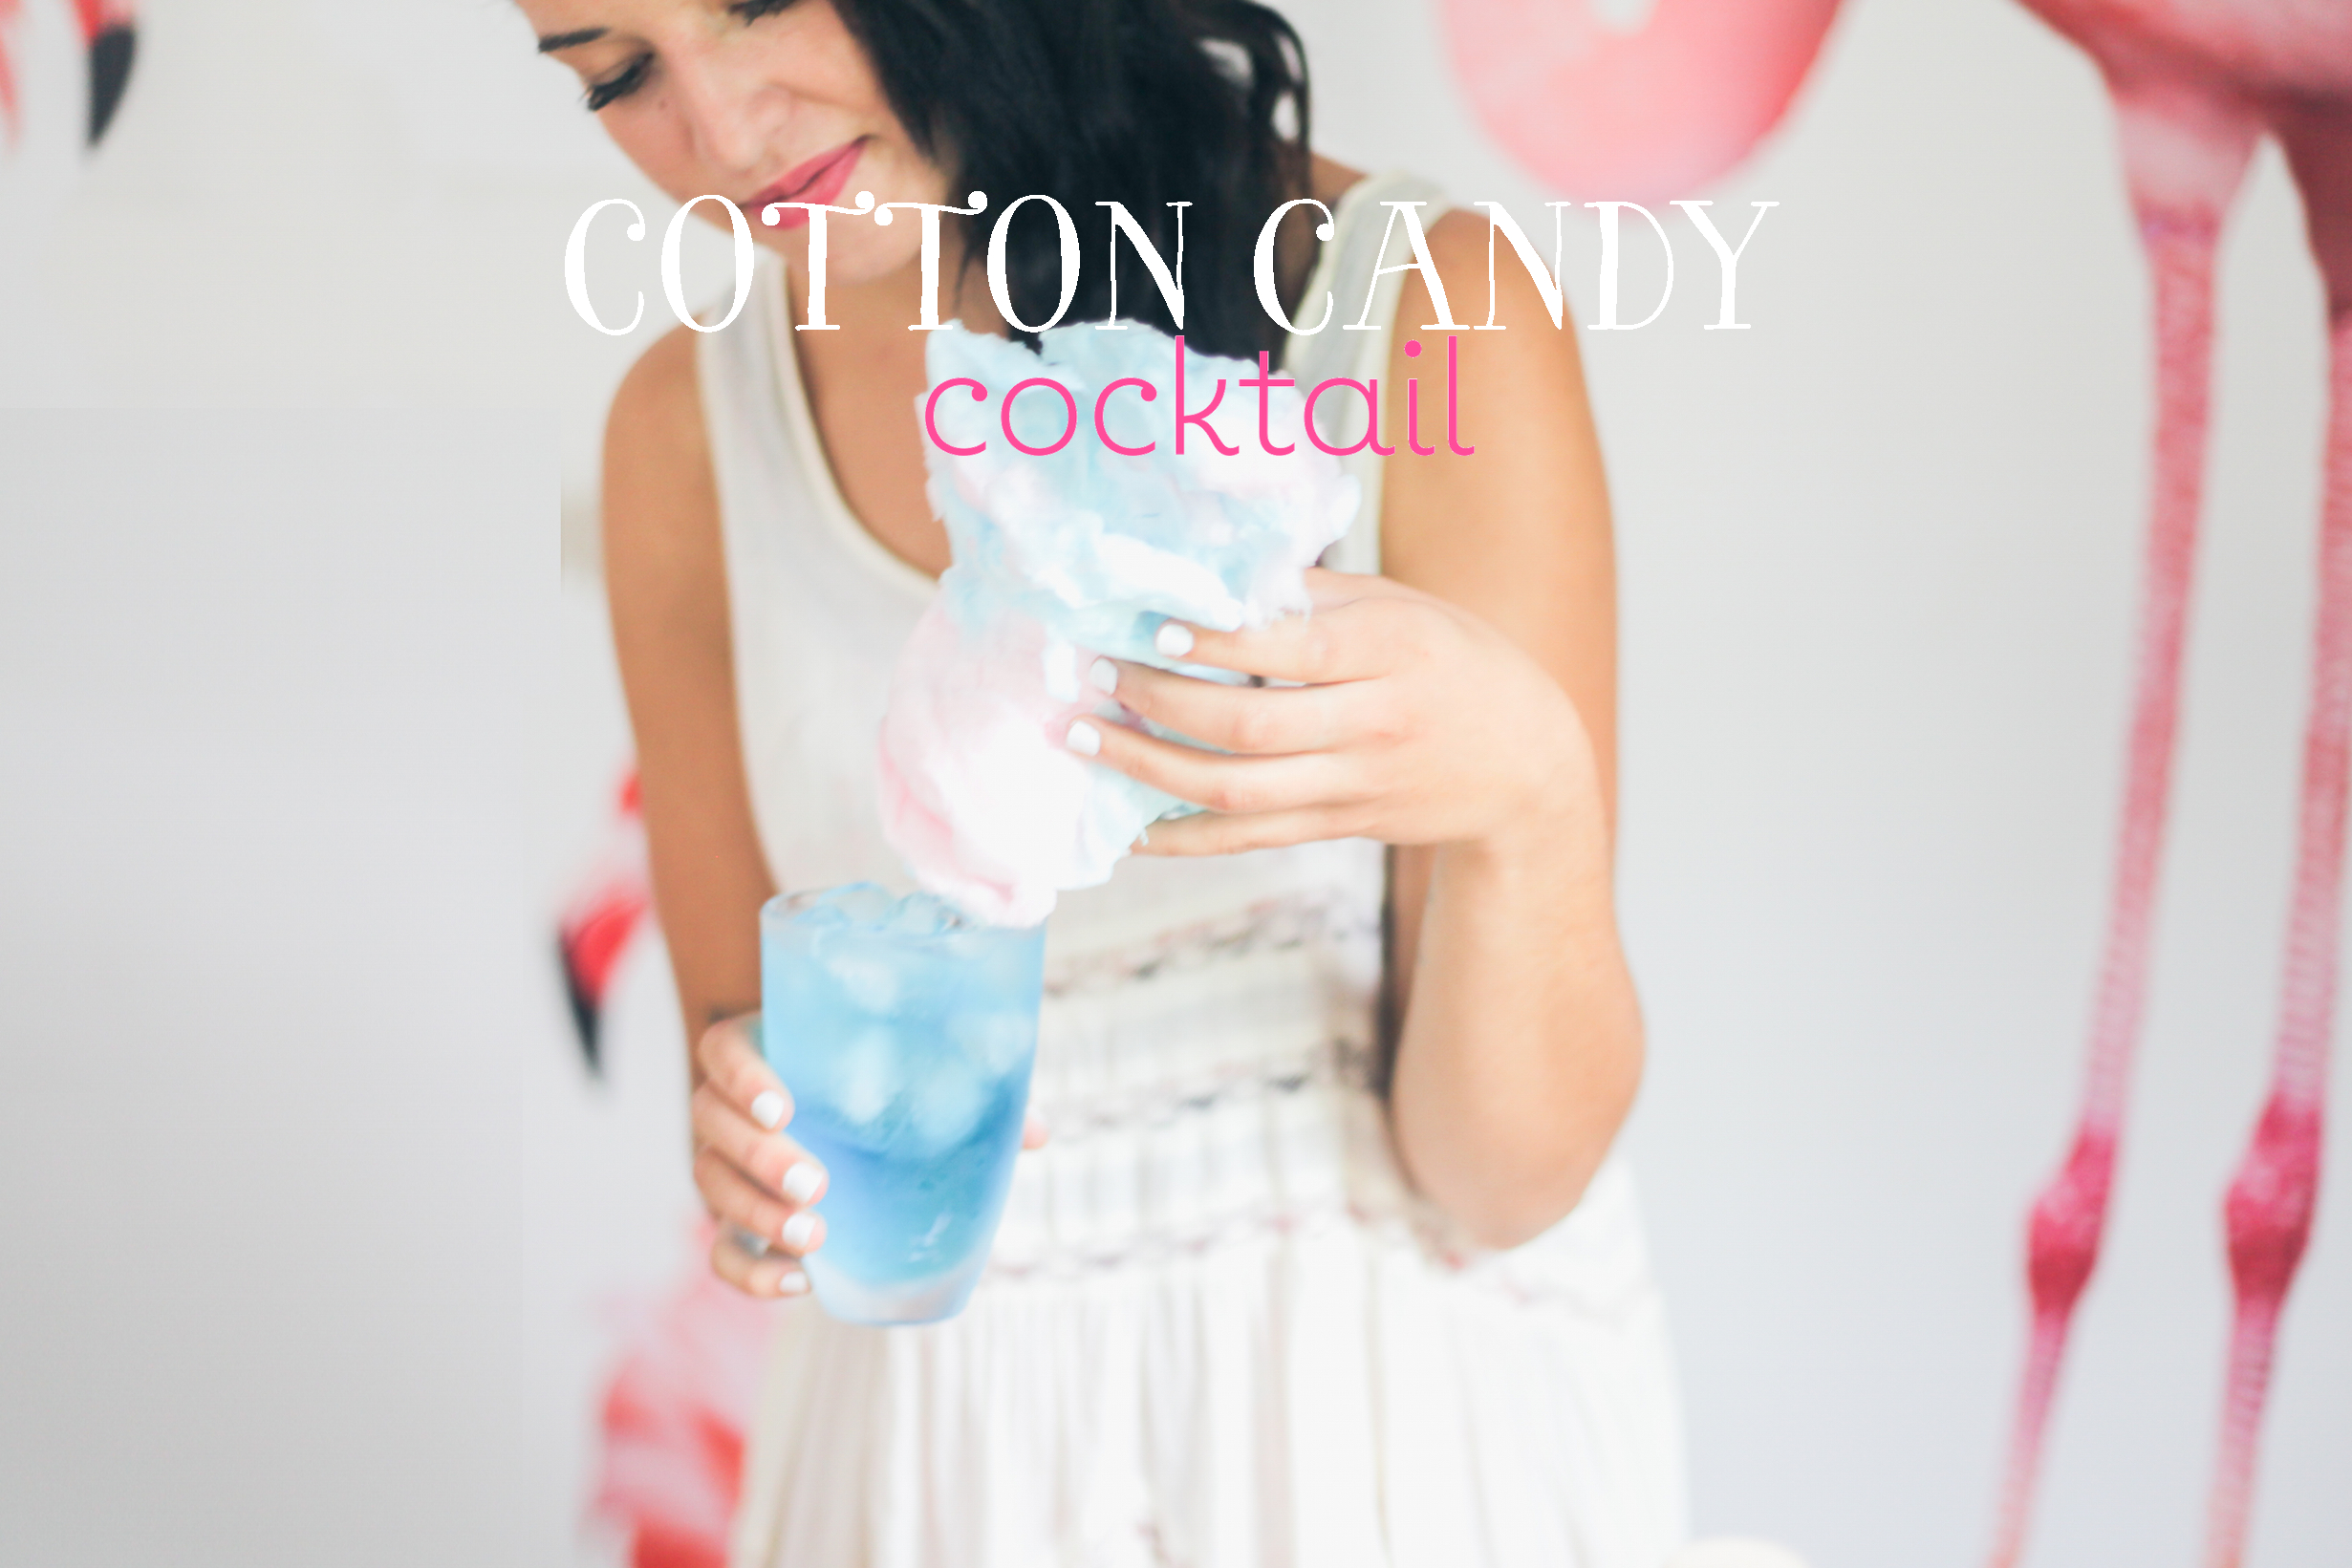 cottoncandy martini east van vodka bubblegum jones soda diy recipe cocktail-21.jpg